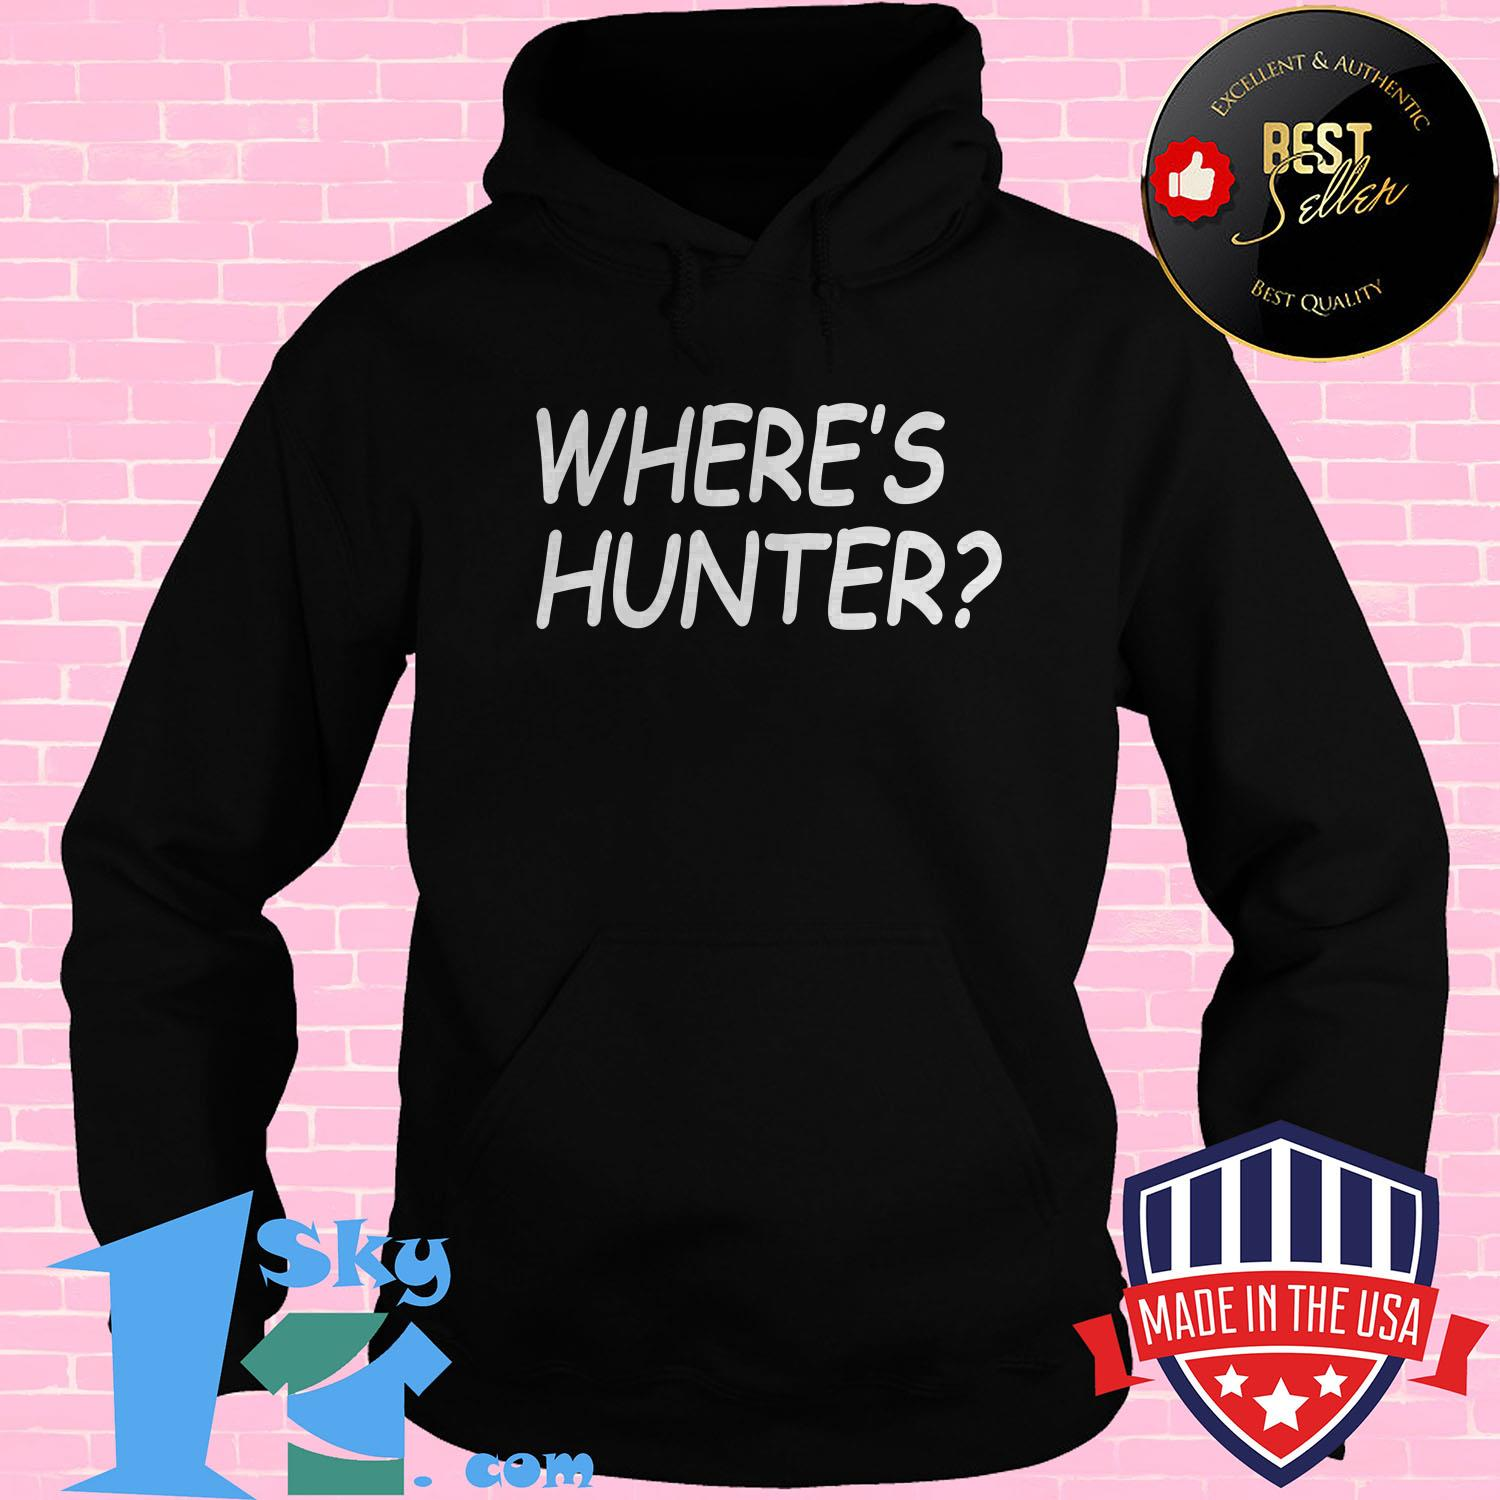 official trump wheres hunter hoodie - Official Trump Where's Hunter shirt